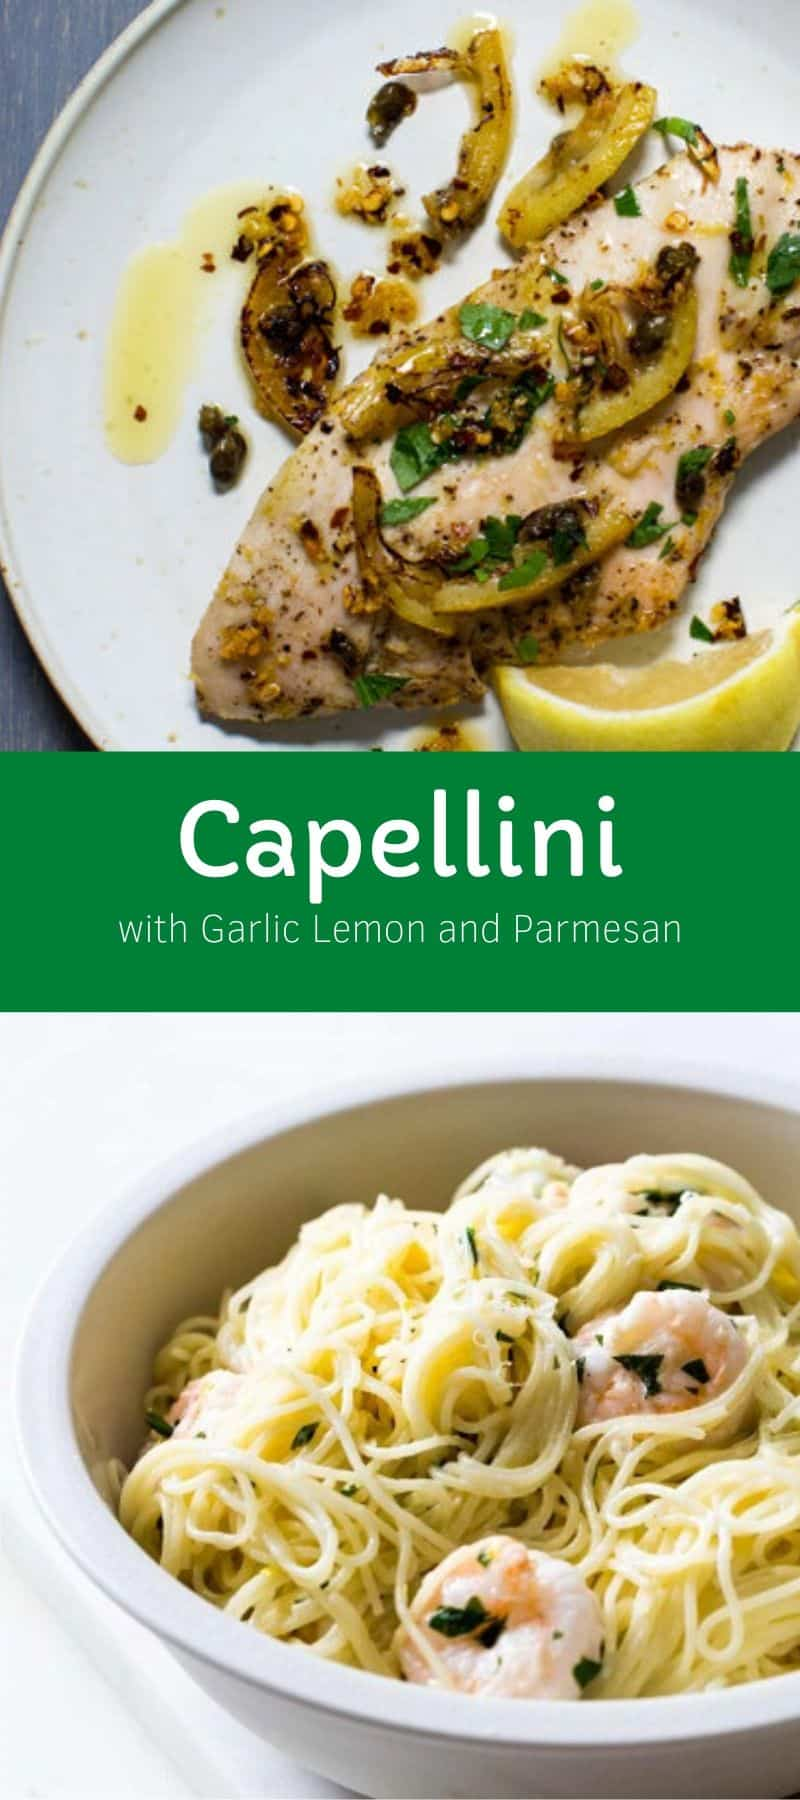 Capellini with Garlic Lemon and Parmesan 3